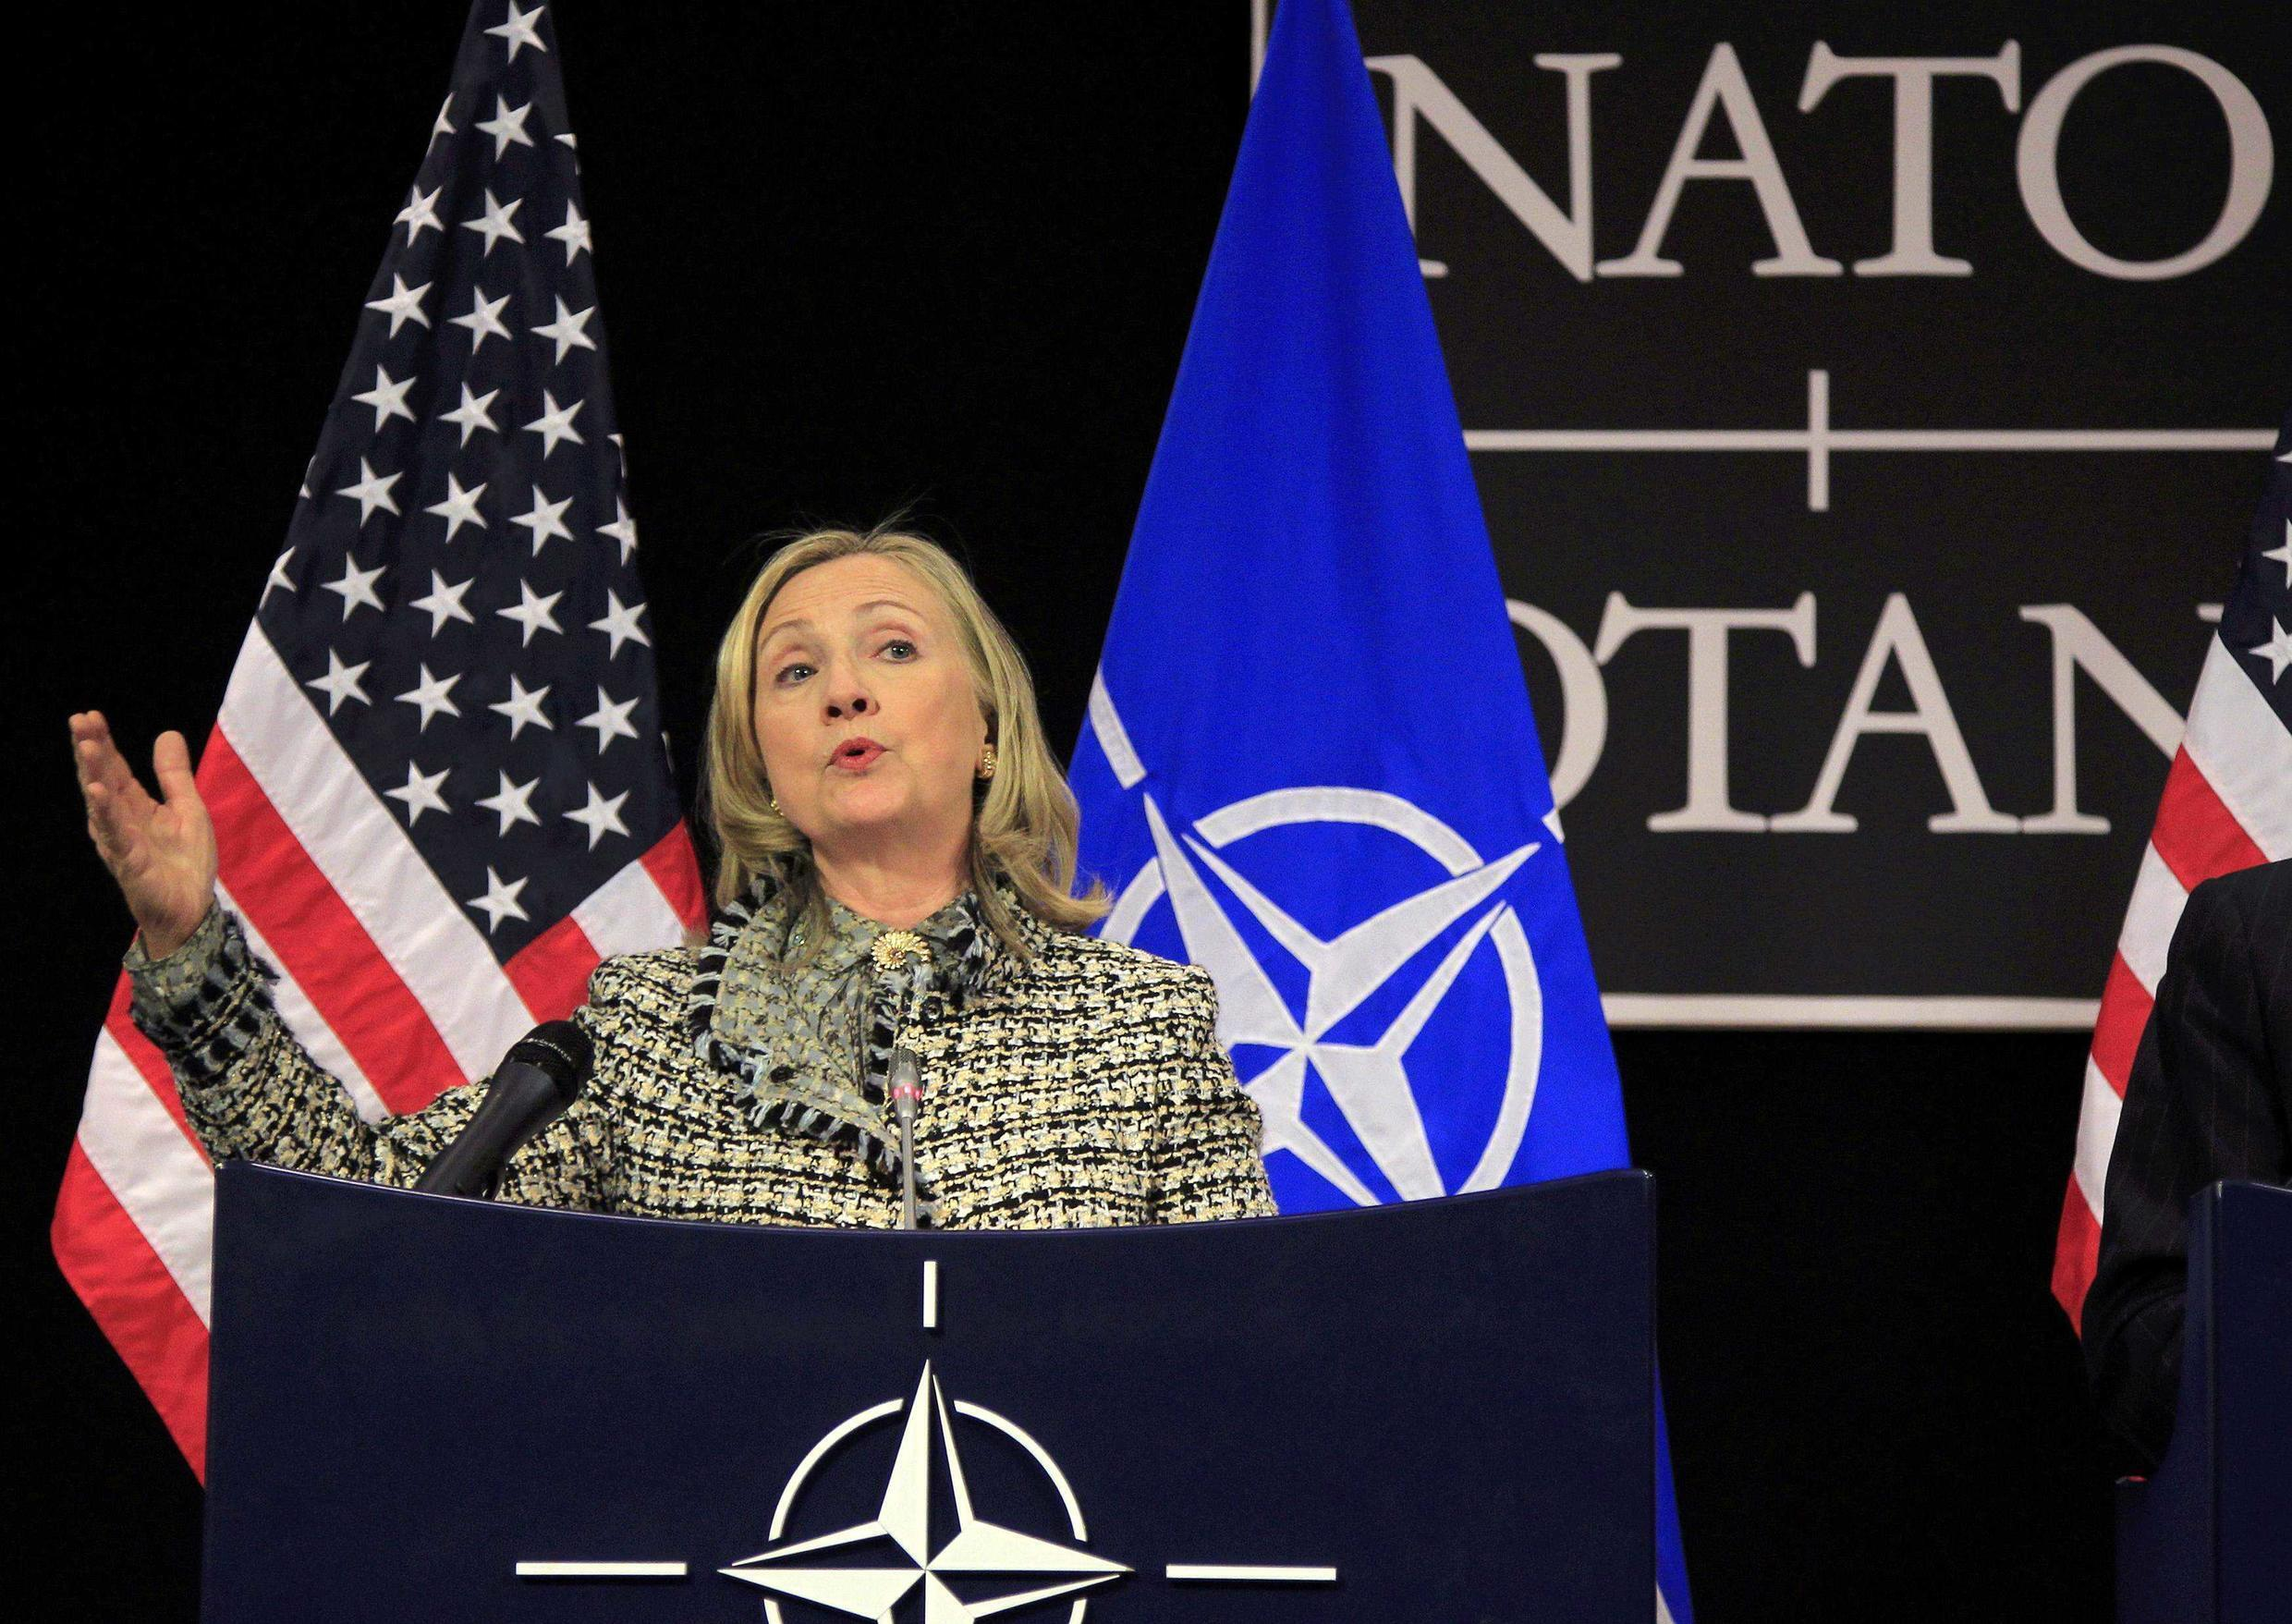 US Secretary of State Hillary Clinton speaks at a news conference at the Alliance headquarters in Brussels